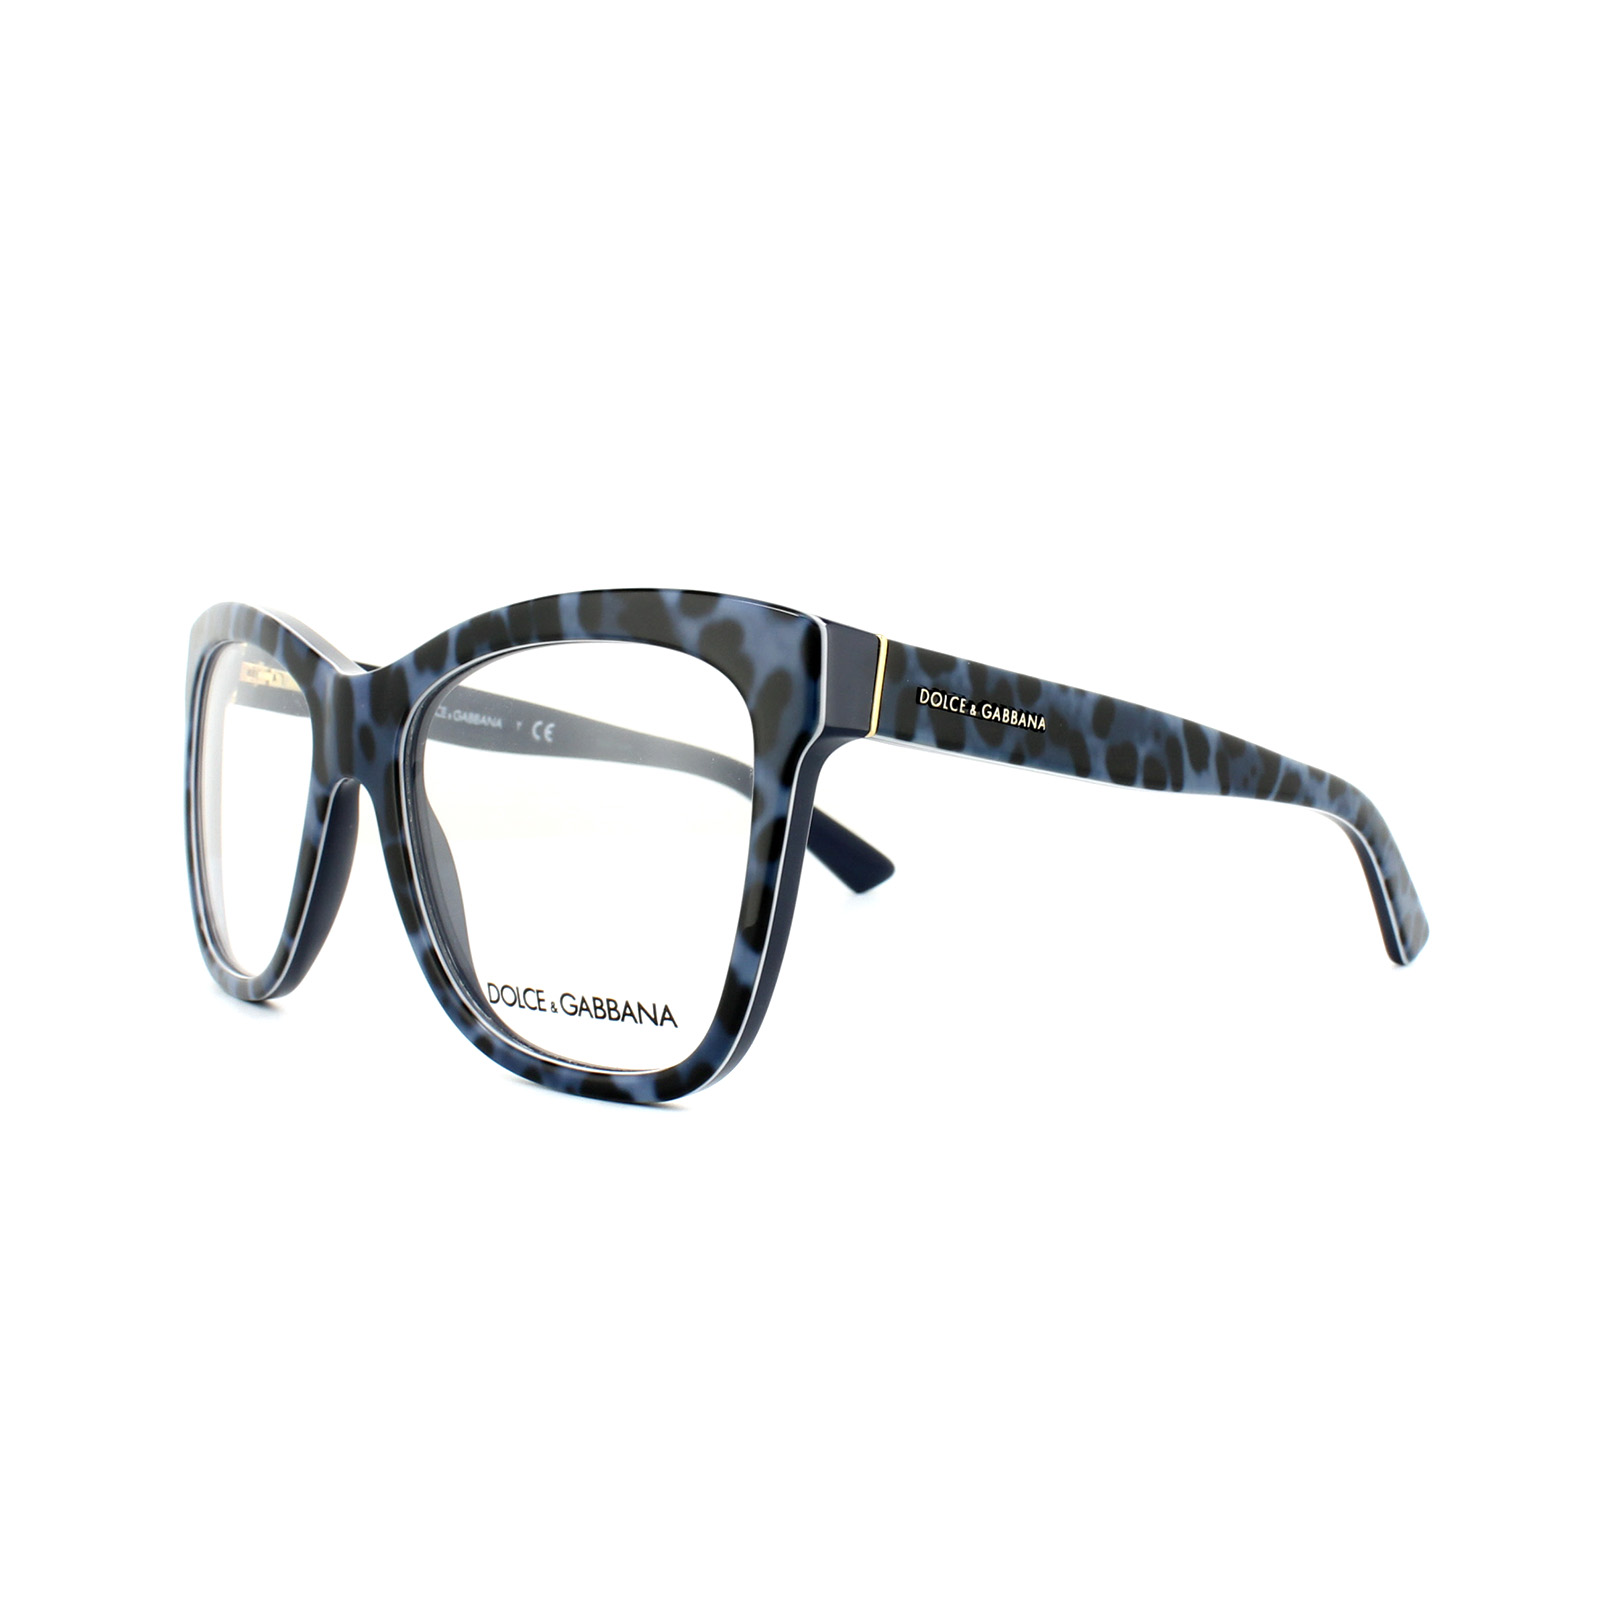 c98469f75ae Dolce and Gabbana Glasses Frames DG 3212 2880 Enchanted Blue Womens ...